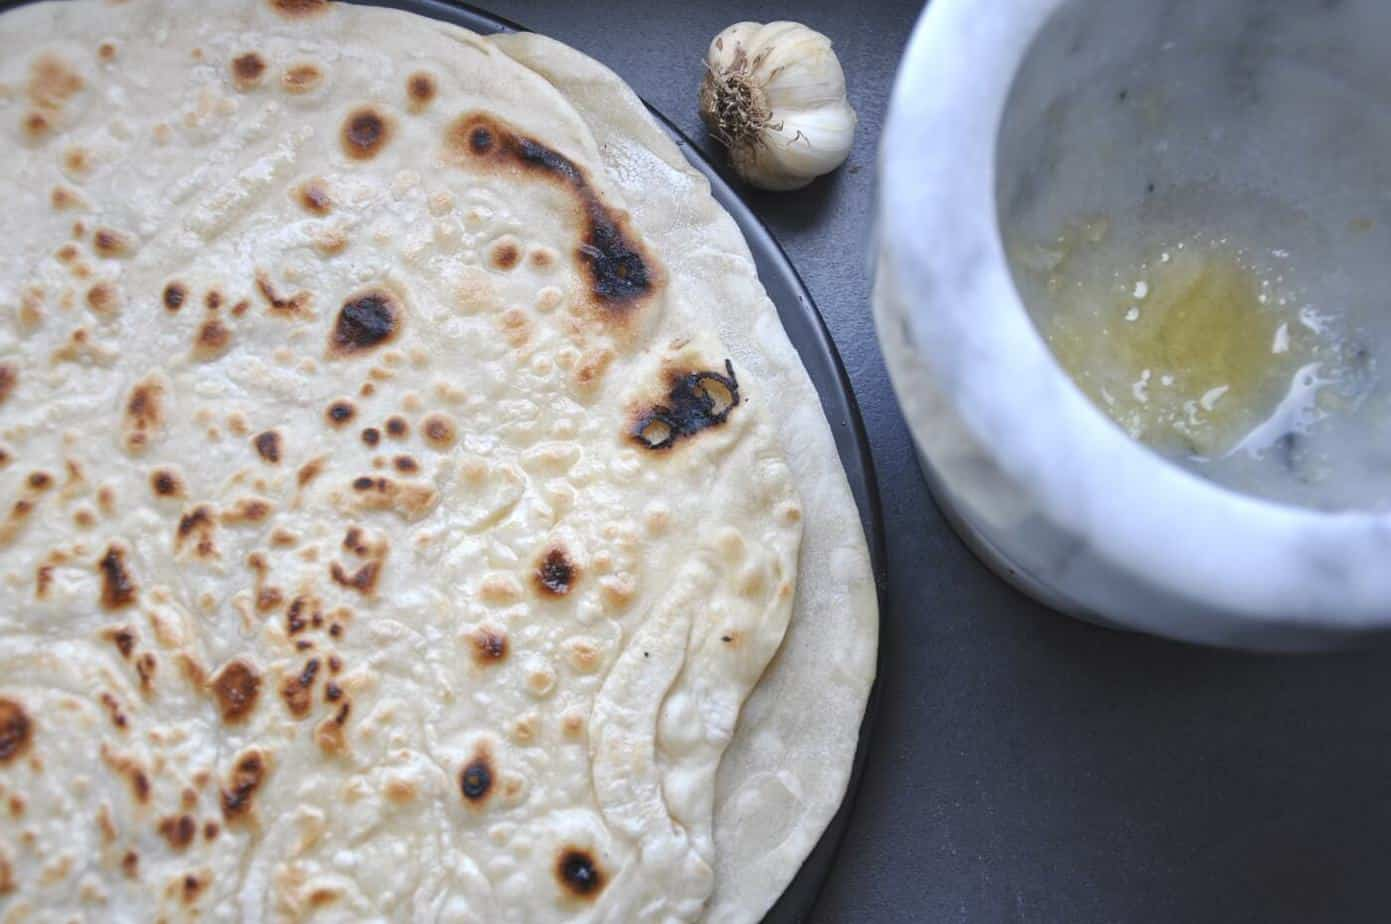 baked Indian flatbread dough, roti, naan, chapati or paratha with garlic